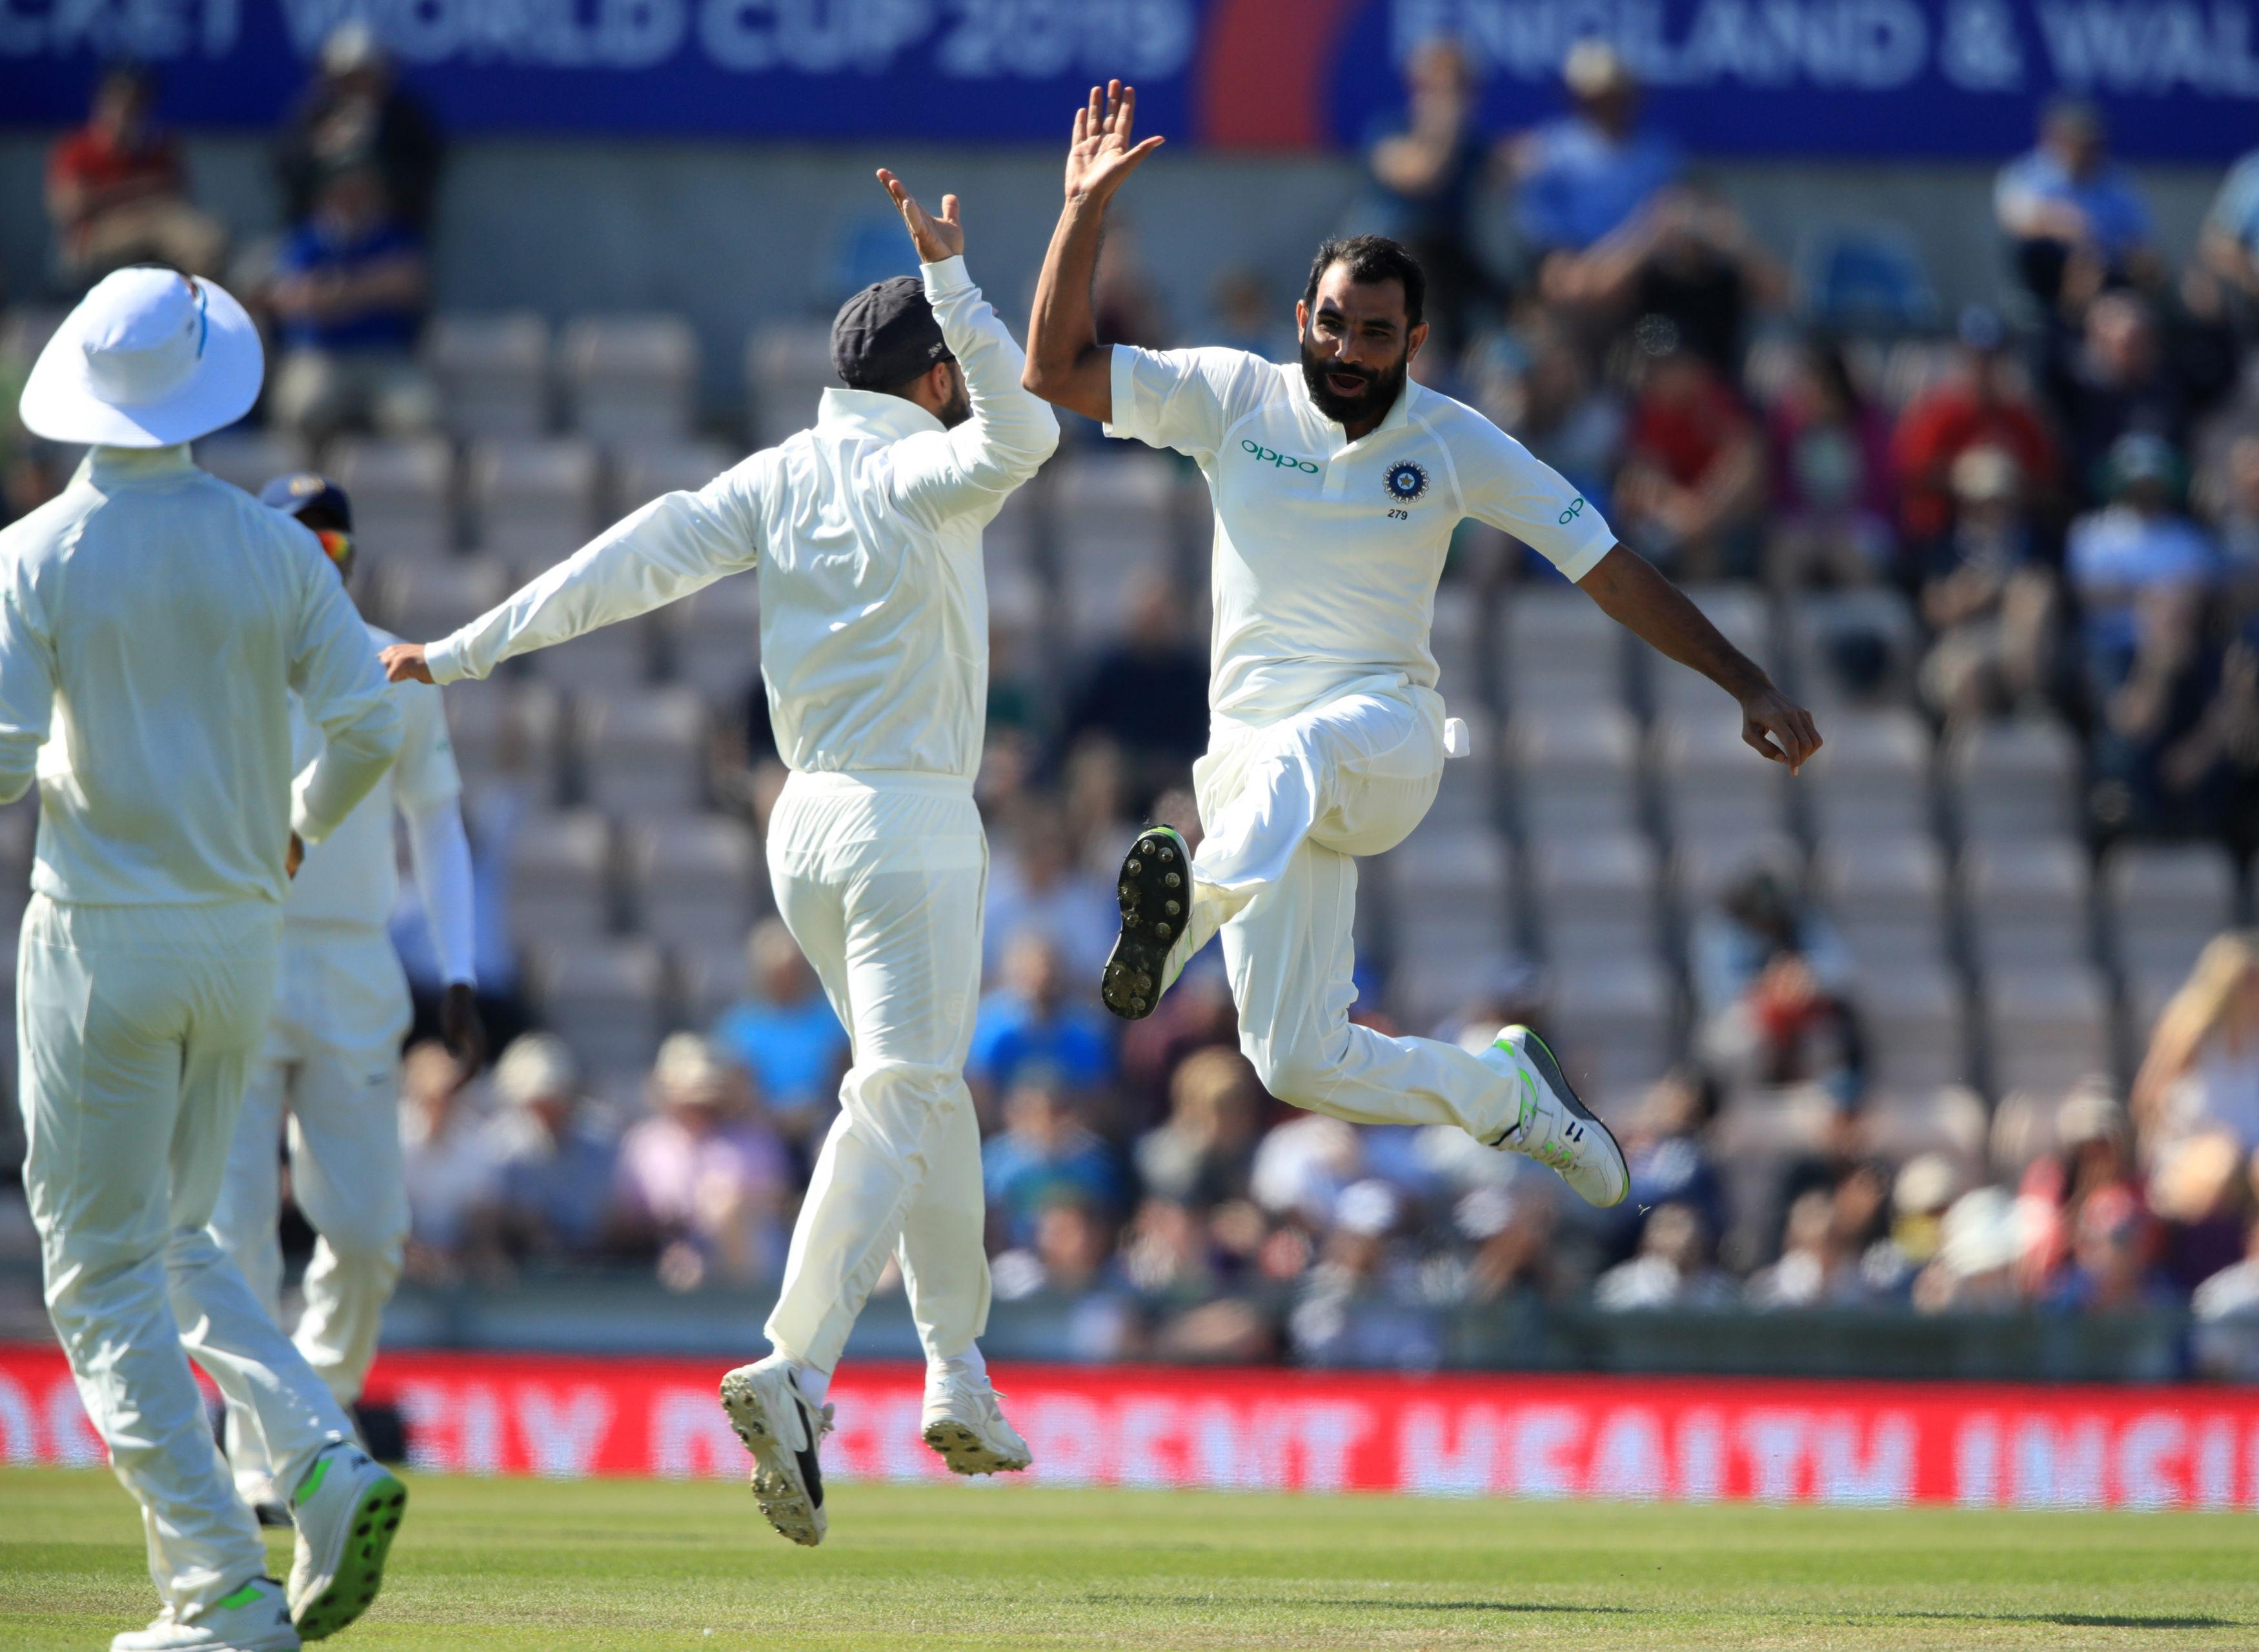 India celebrated their superb start after the wicket of Stuart Broad